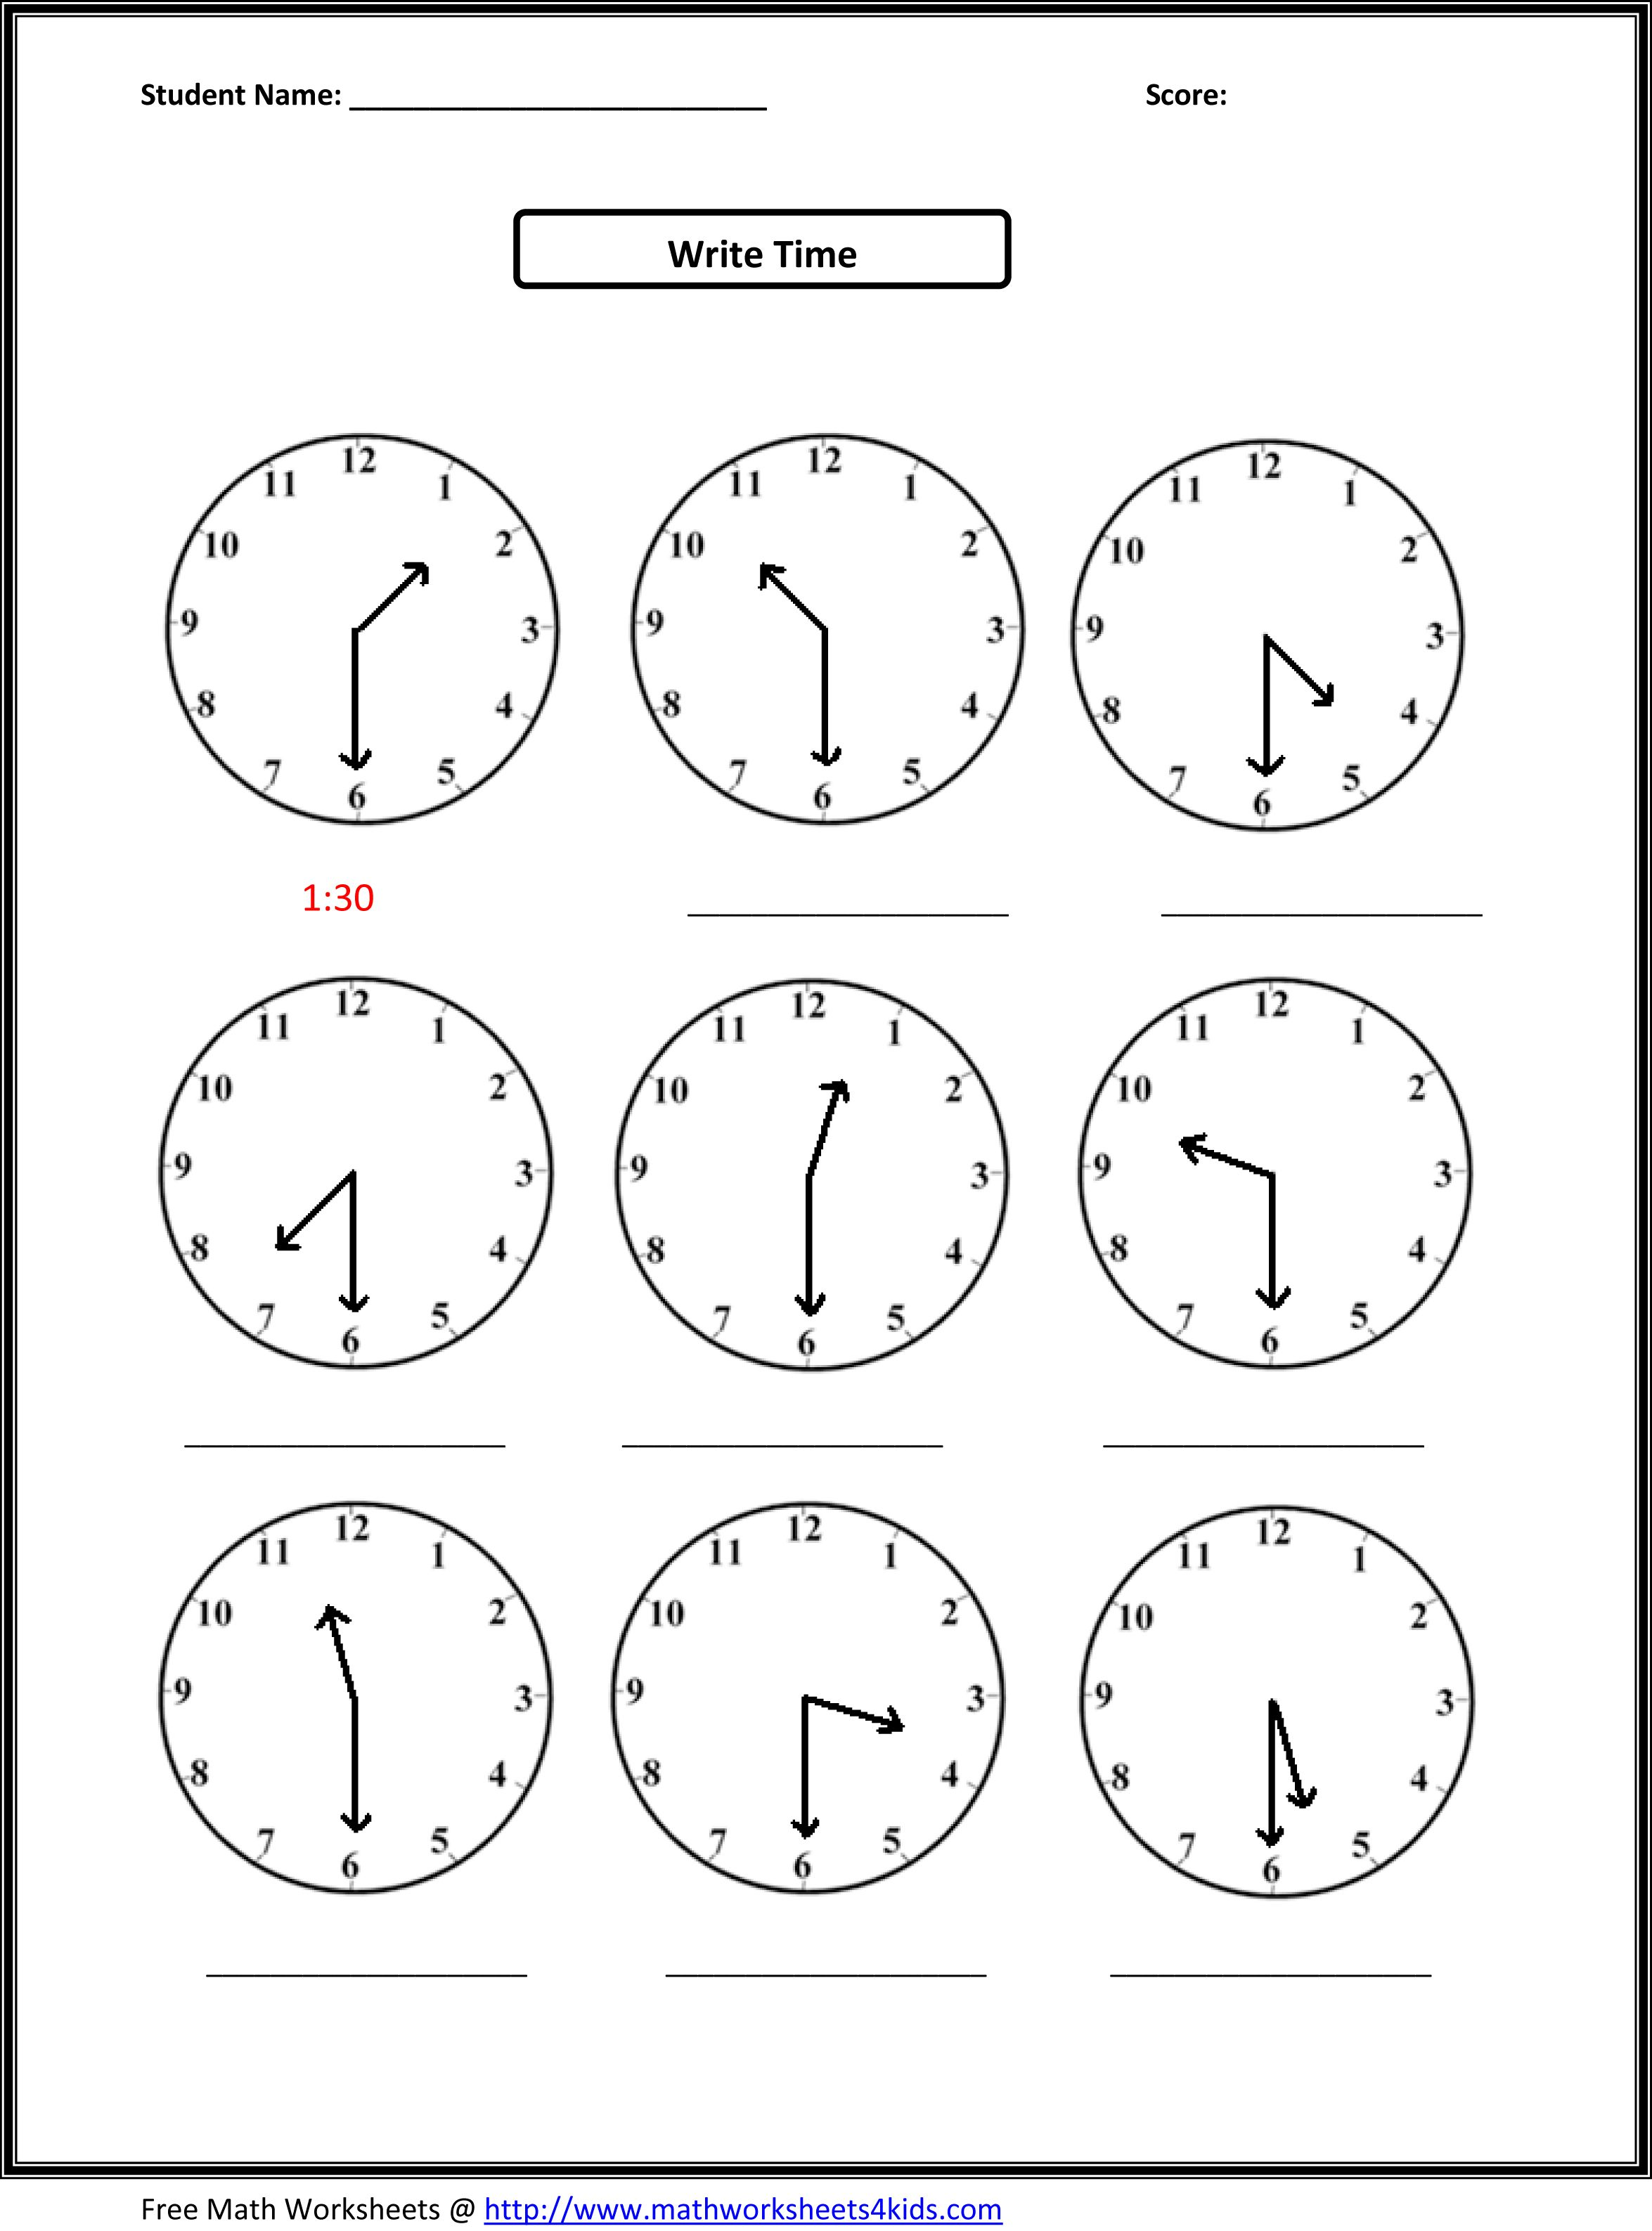 Proatmealus  Ravishing Worksheet On Time For Grade   Reocurent With Extraordinary Free Printable Telling Time Worksheets Nd Grade  Reocurent With Adorable Free Printable Addition And Subtraction Worksheets With Regrouping Also Th Standard Maths Worksheets In Addition Worksheet For Class  English Grammar And Converting Imperial Units Worksheet As Well As  And  Digit Addition And Subtraction Worksheets Additionally Bsl Worksheets From Reocurentcom With Proatmealus  Extraordinary Worksheet On Time For Grade   Reocurent With Adorable Free Printable Telling Time Worksheets Nd Grade  Reocurent And Ravishing Free Printable Addition And Subtraction Worksheets With Regrouping Also Th Standard Maths Worksheets In Addition Worksheet For Class  English Grammar From Reocurentcom